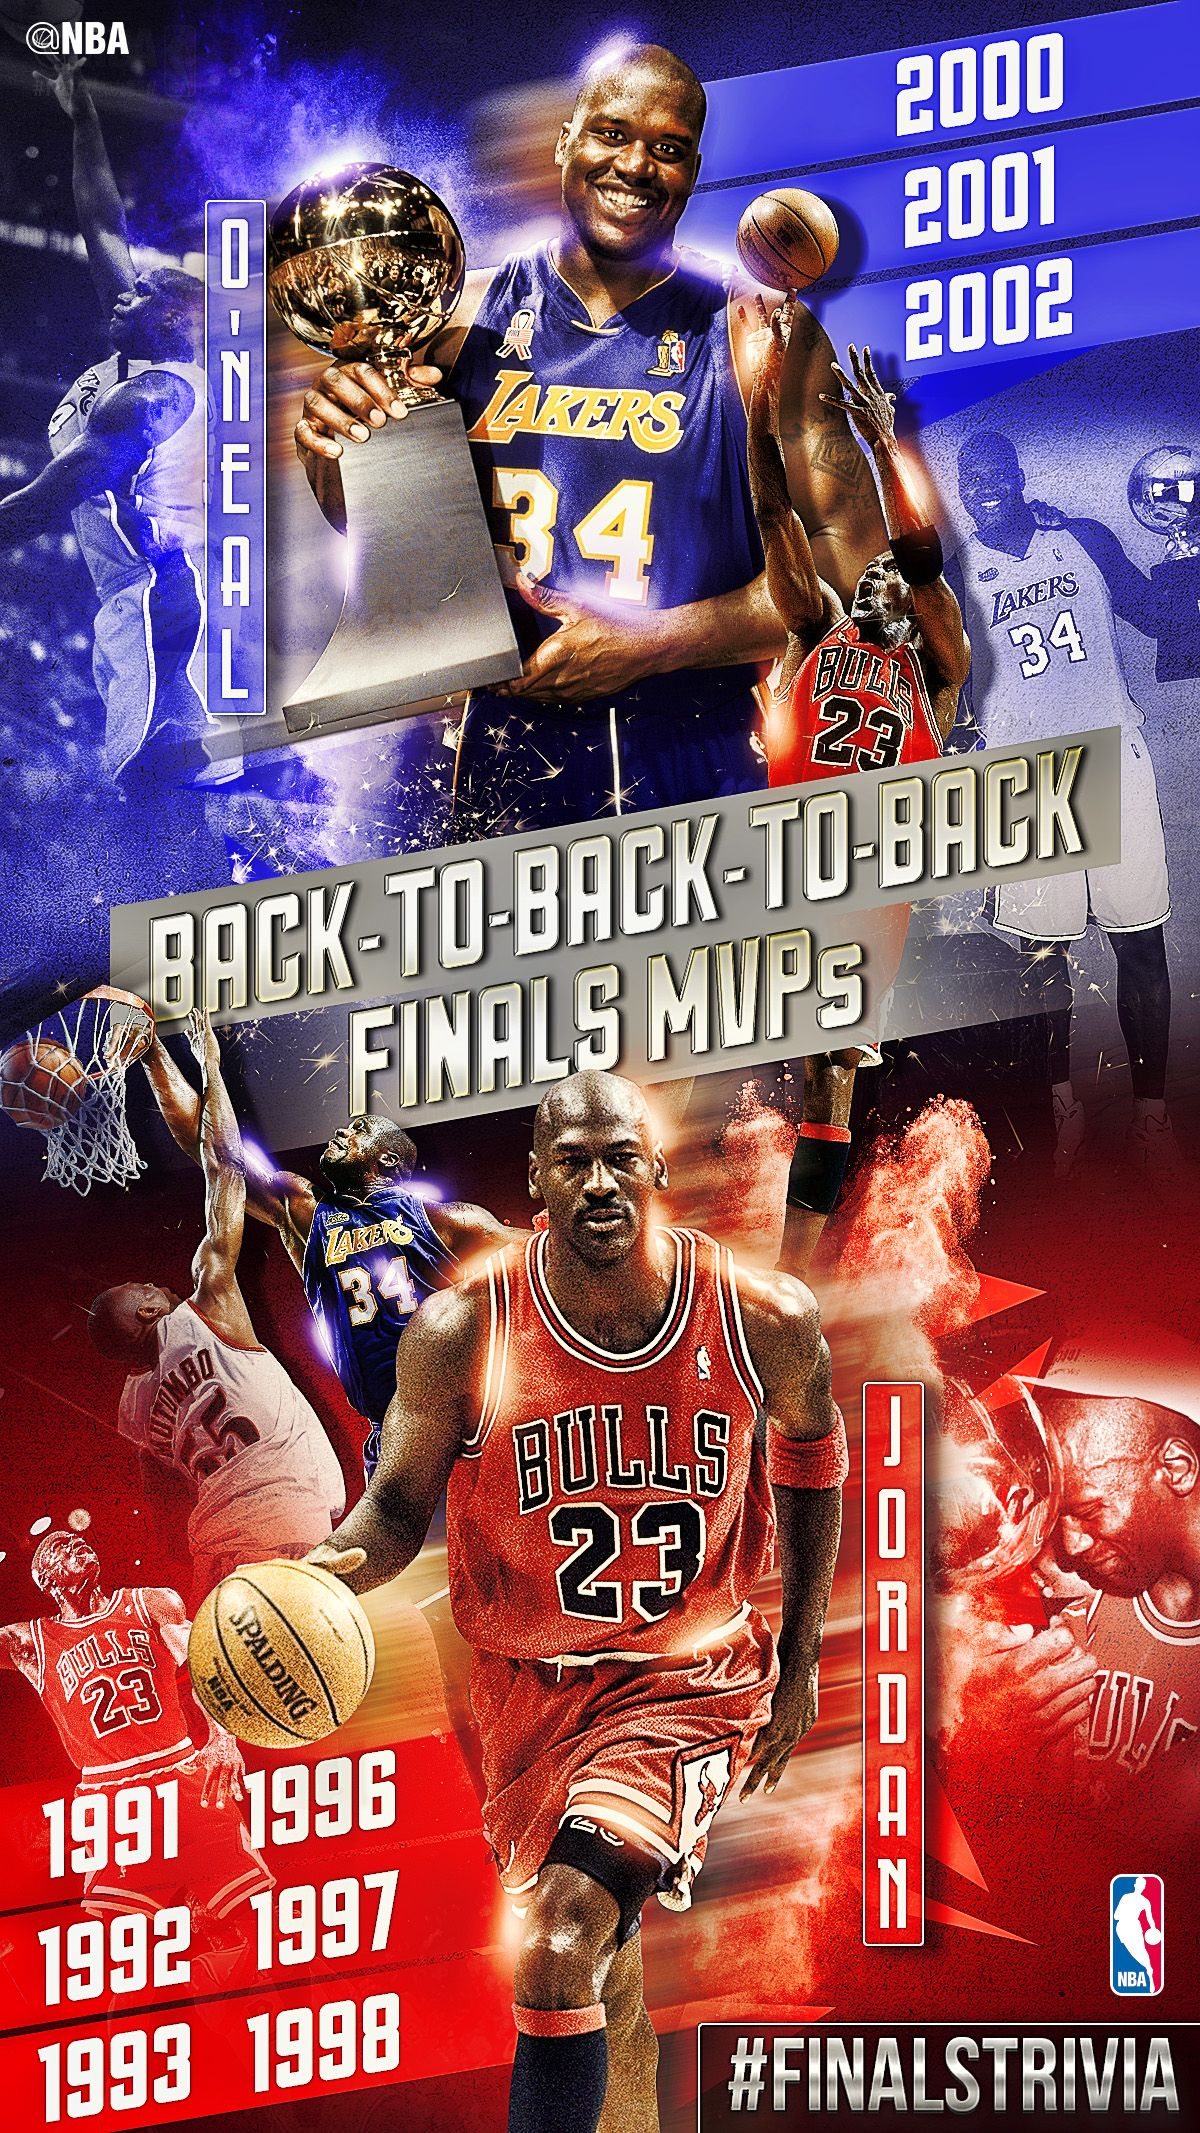 FinalsTrivia The only two players in NBA History to be